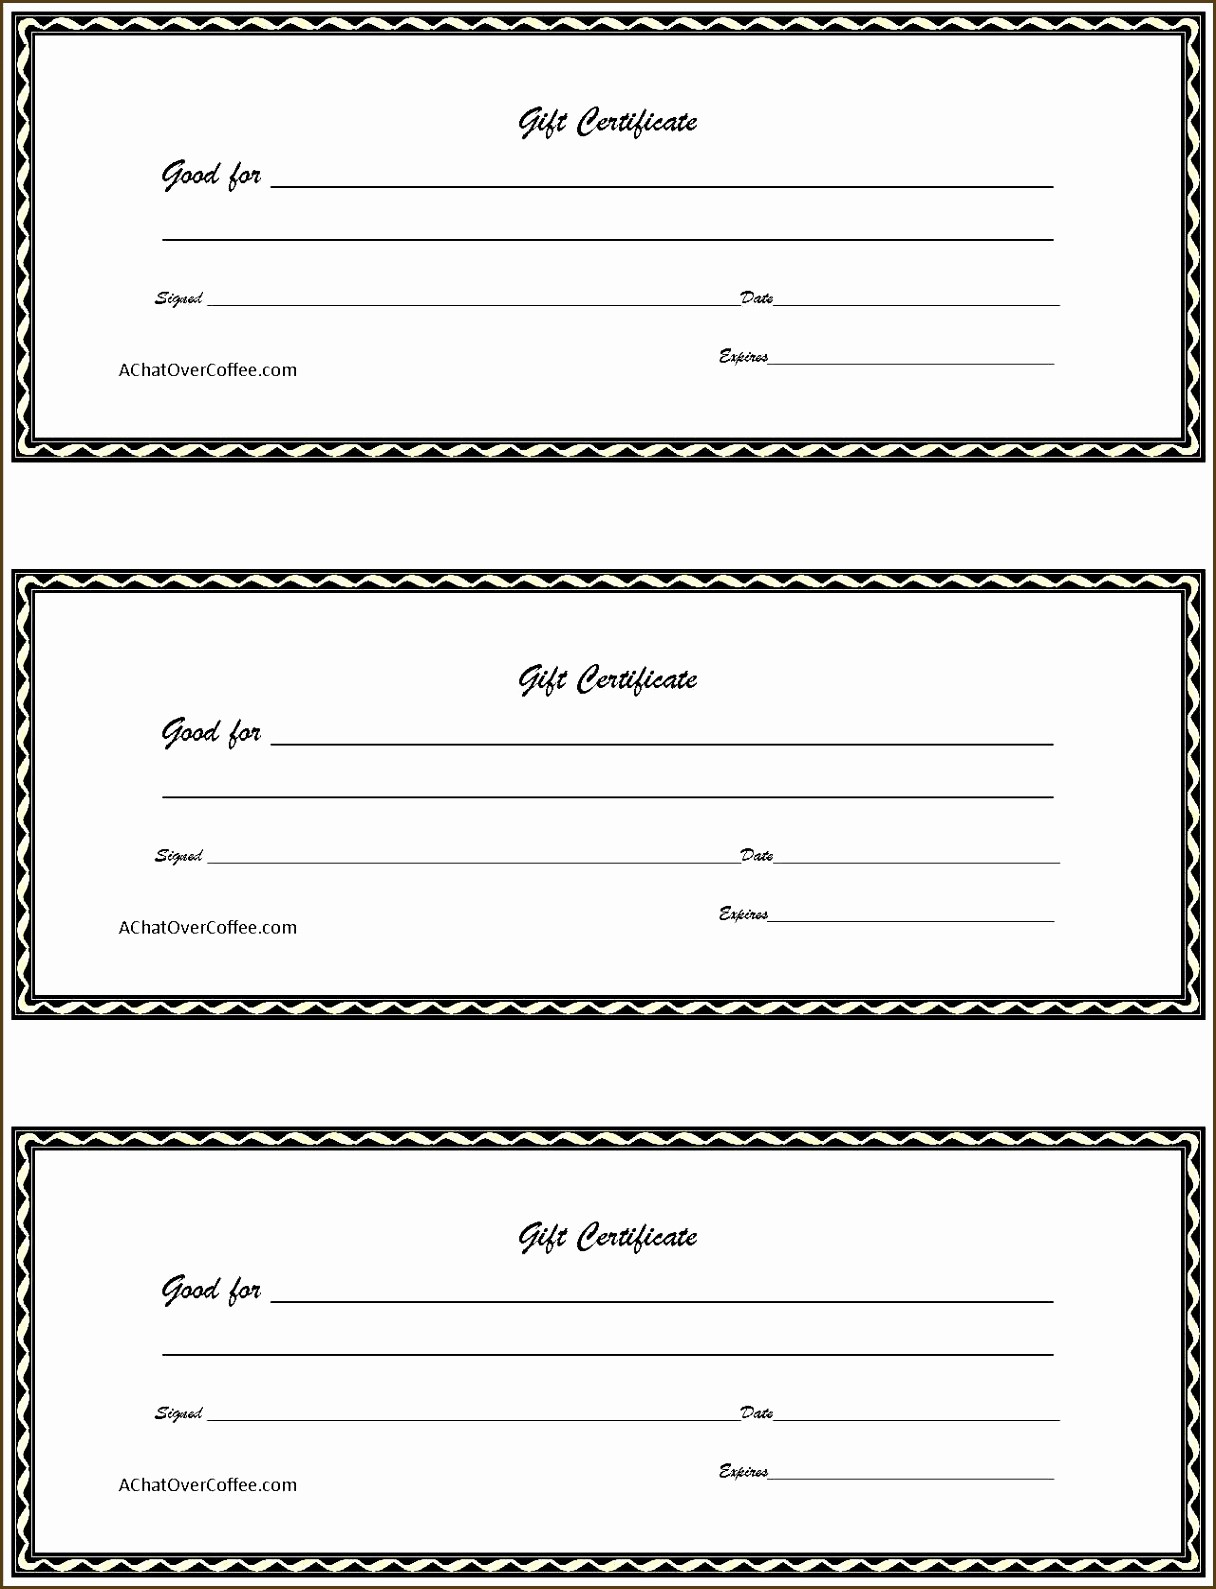 Gift Certificate Templates Free Printable Unique 20 Free Gift Certificate Template